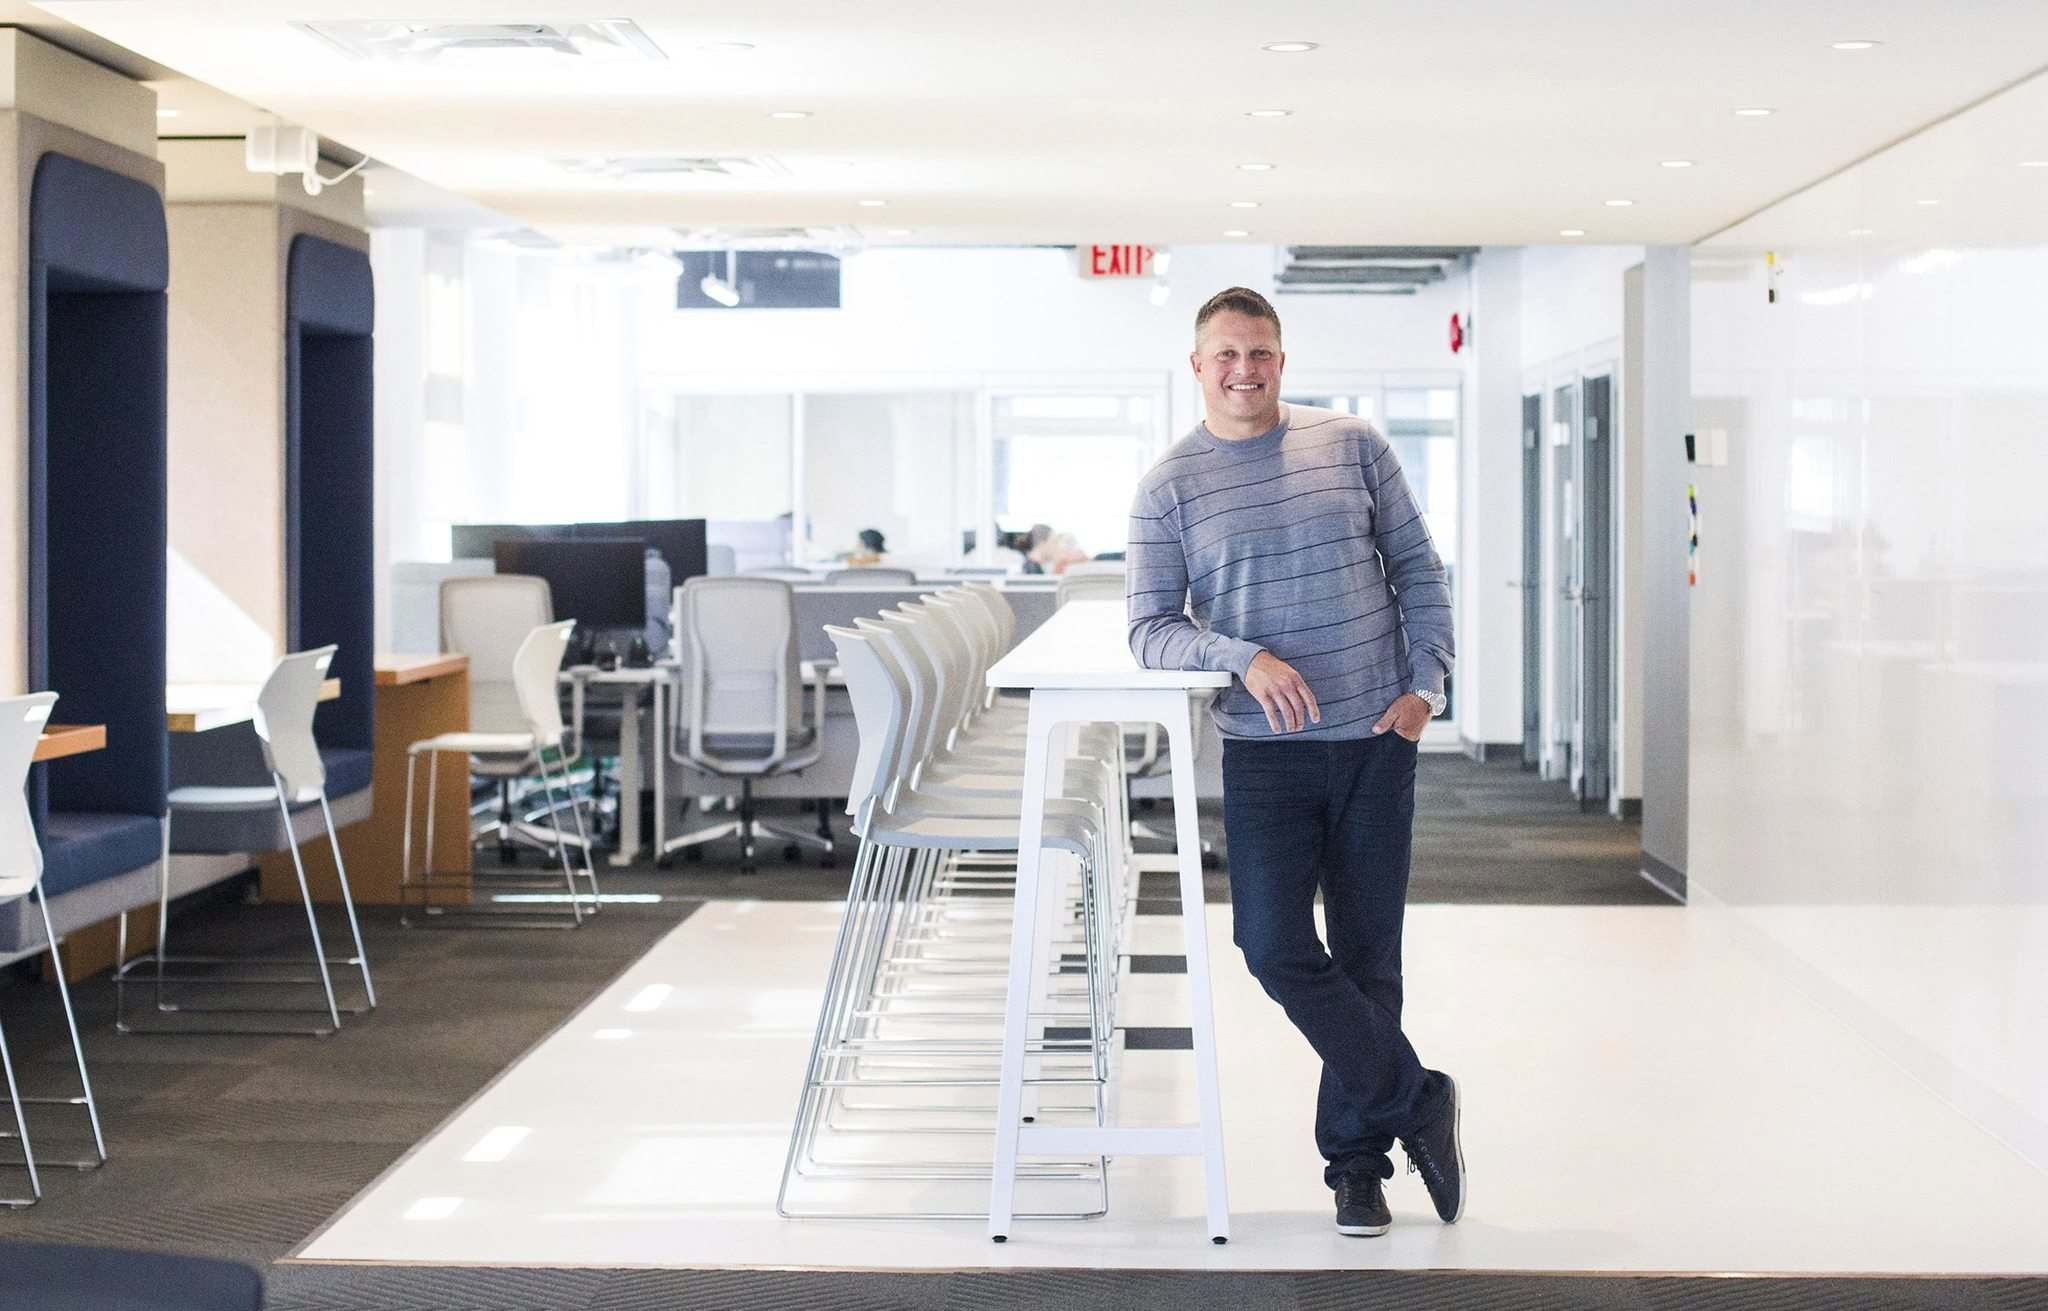 MIKAELA MACKENZIE / WINNIPEG FREE PRESS</p><p>Founder and CEO Jason Abbott at Launch Coworking on Lombard. The co-working business opened the location in March.</p>